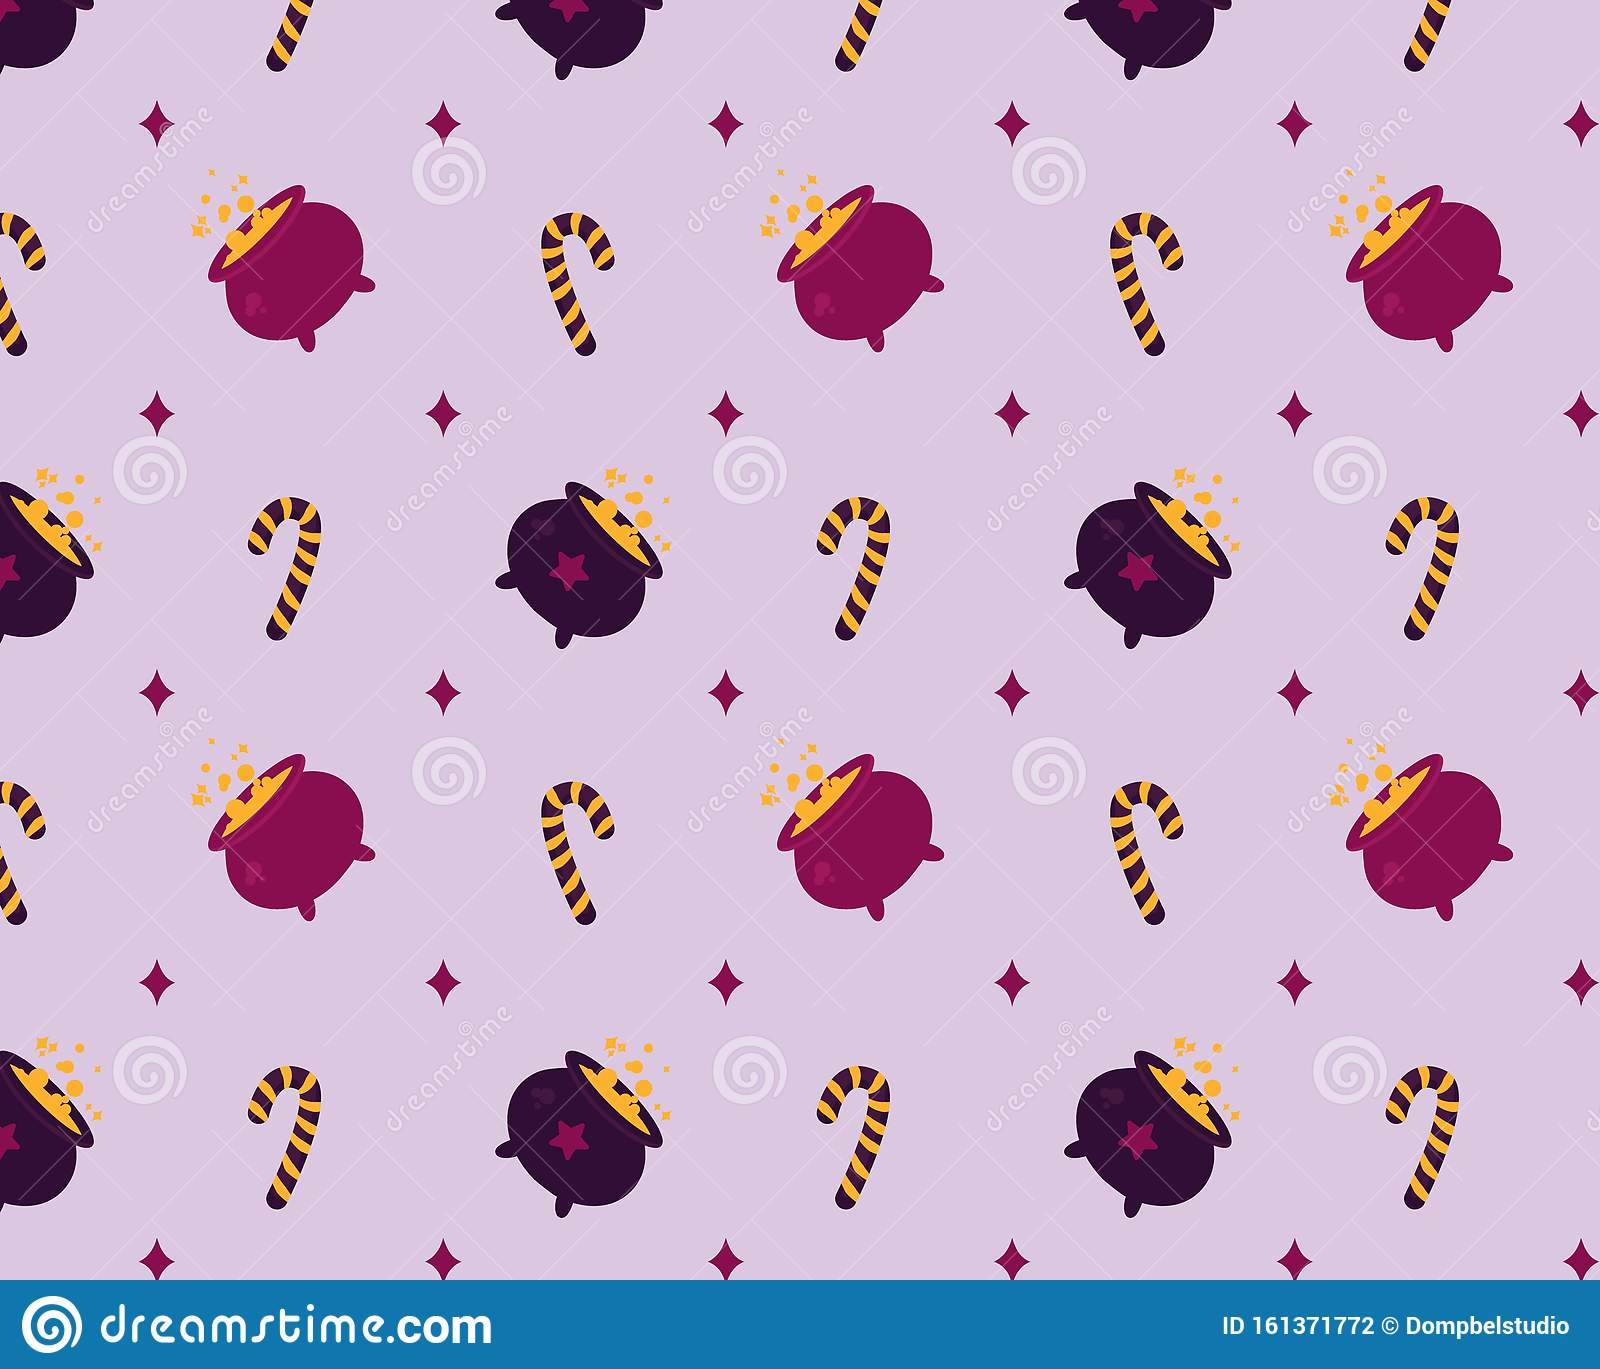 Easy Candy Maze Cartoon Vector